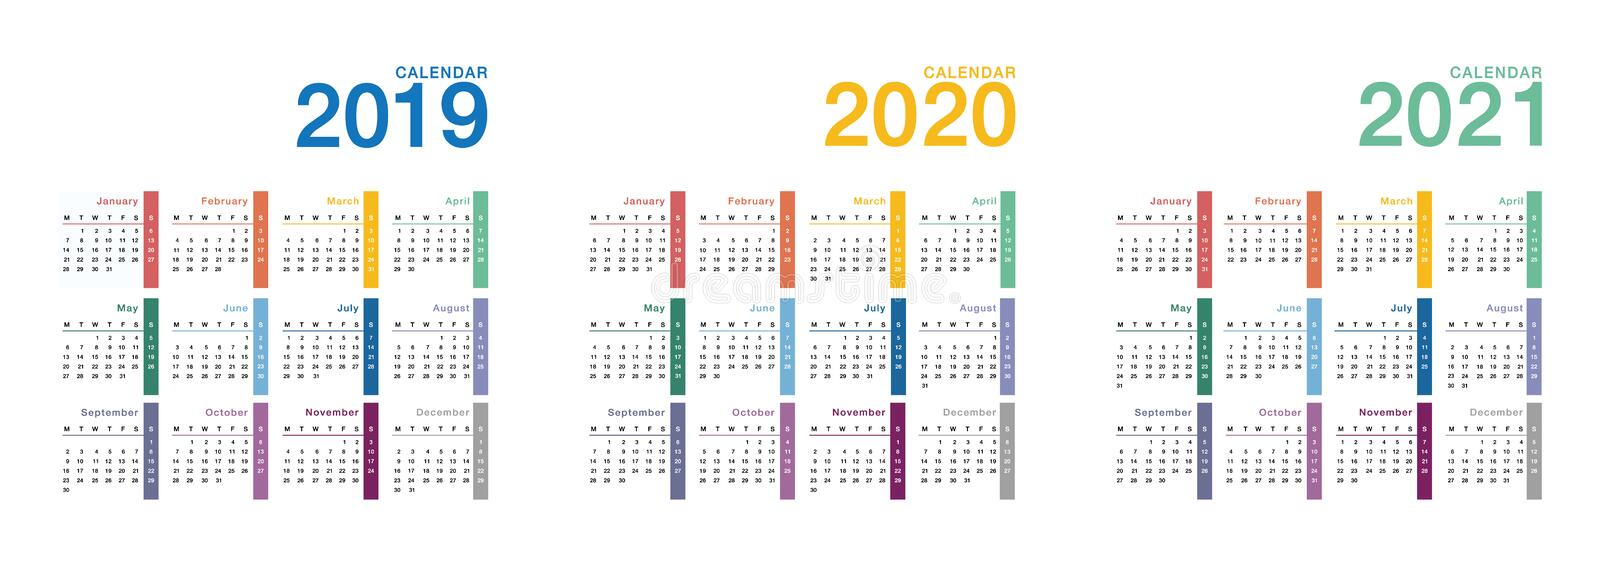 Year 2019 and Year 2020 and Year 2021 calendar vector design template, stock illustration